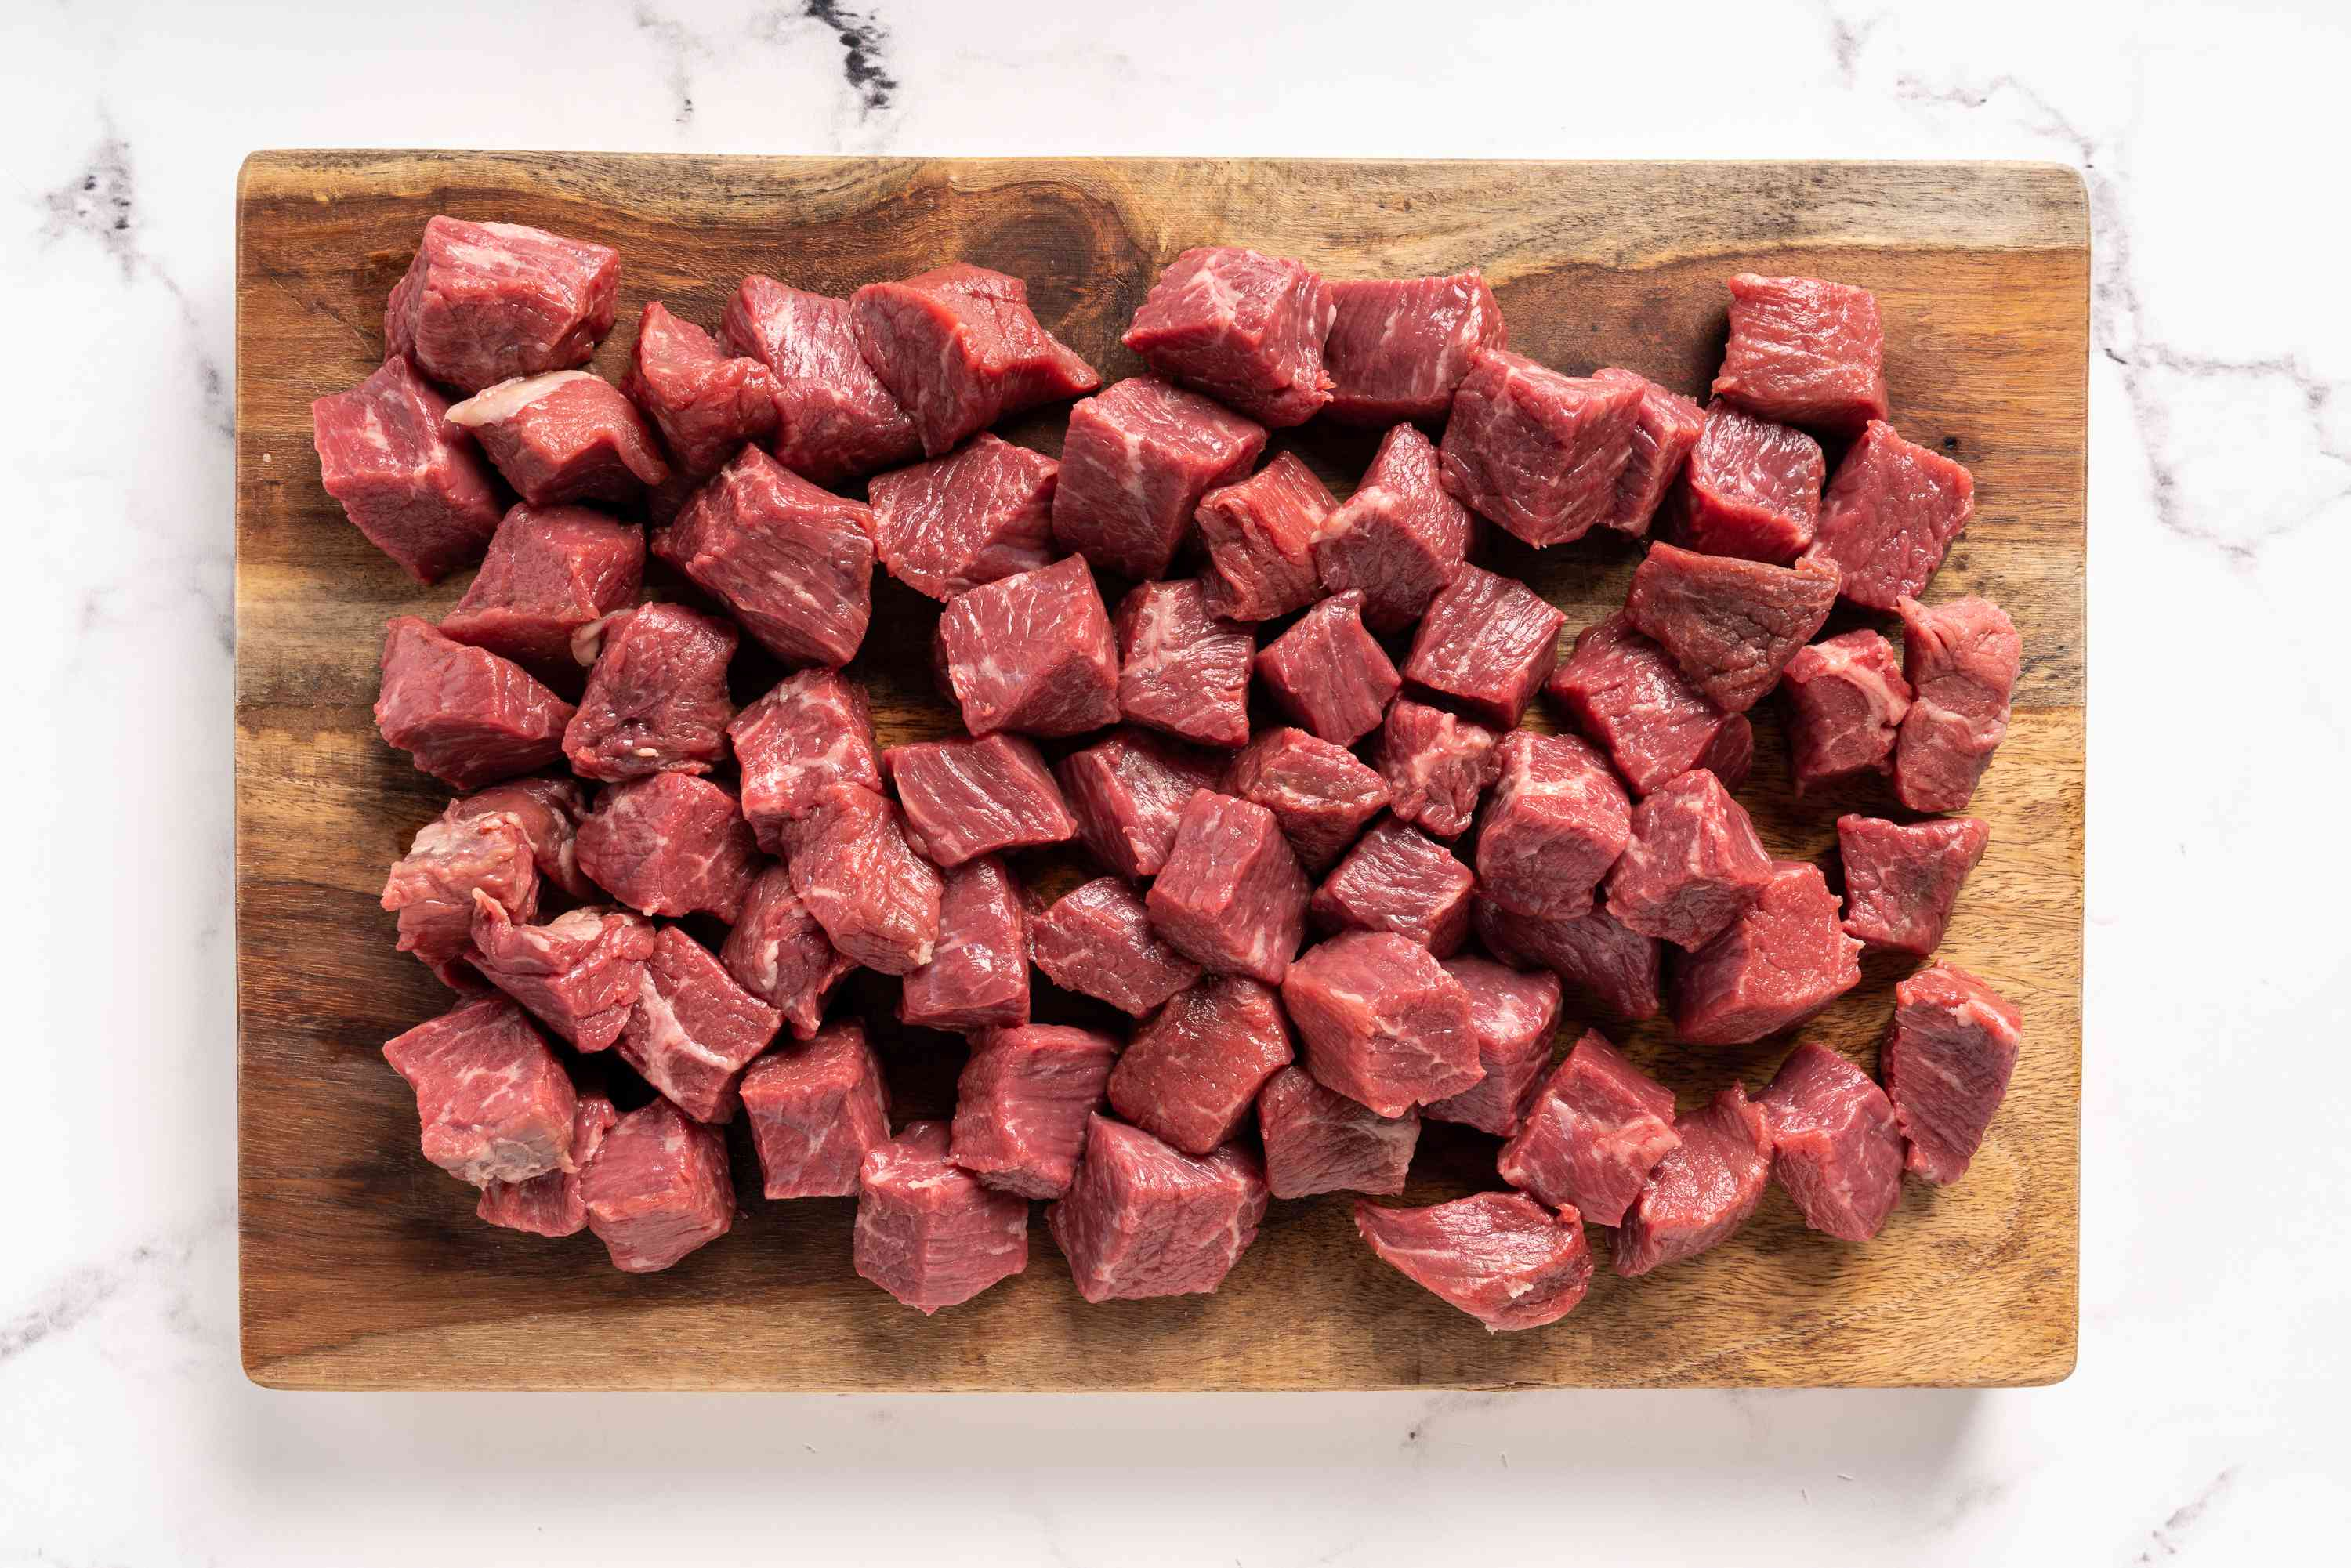 Beef cubes on a cutting board